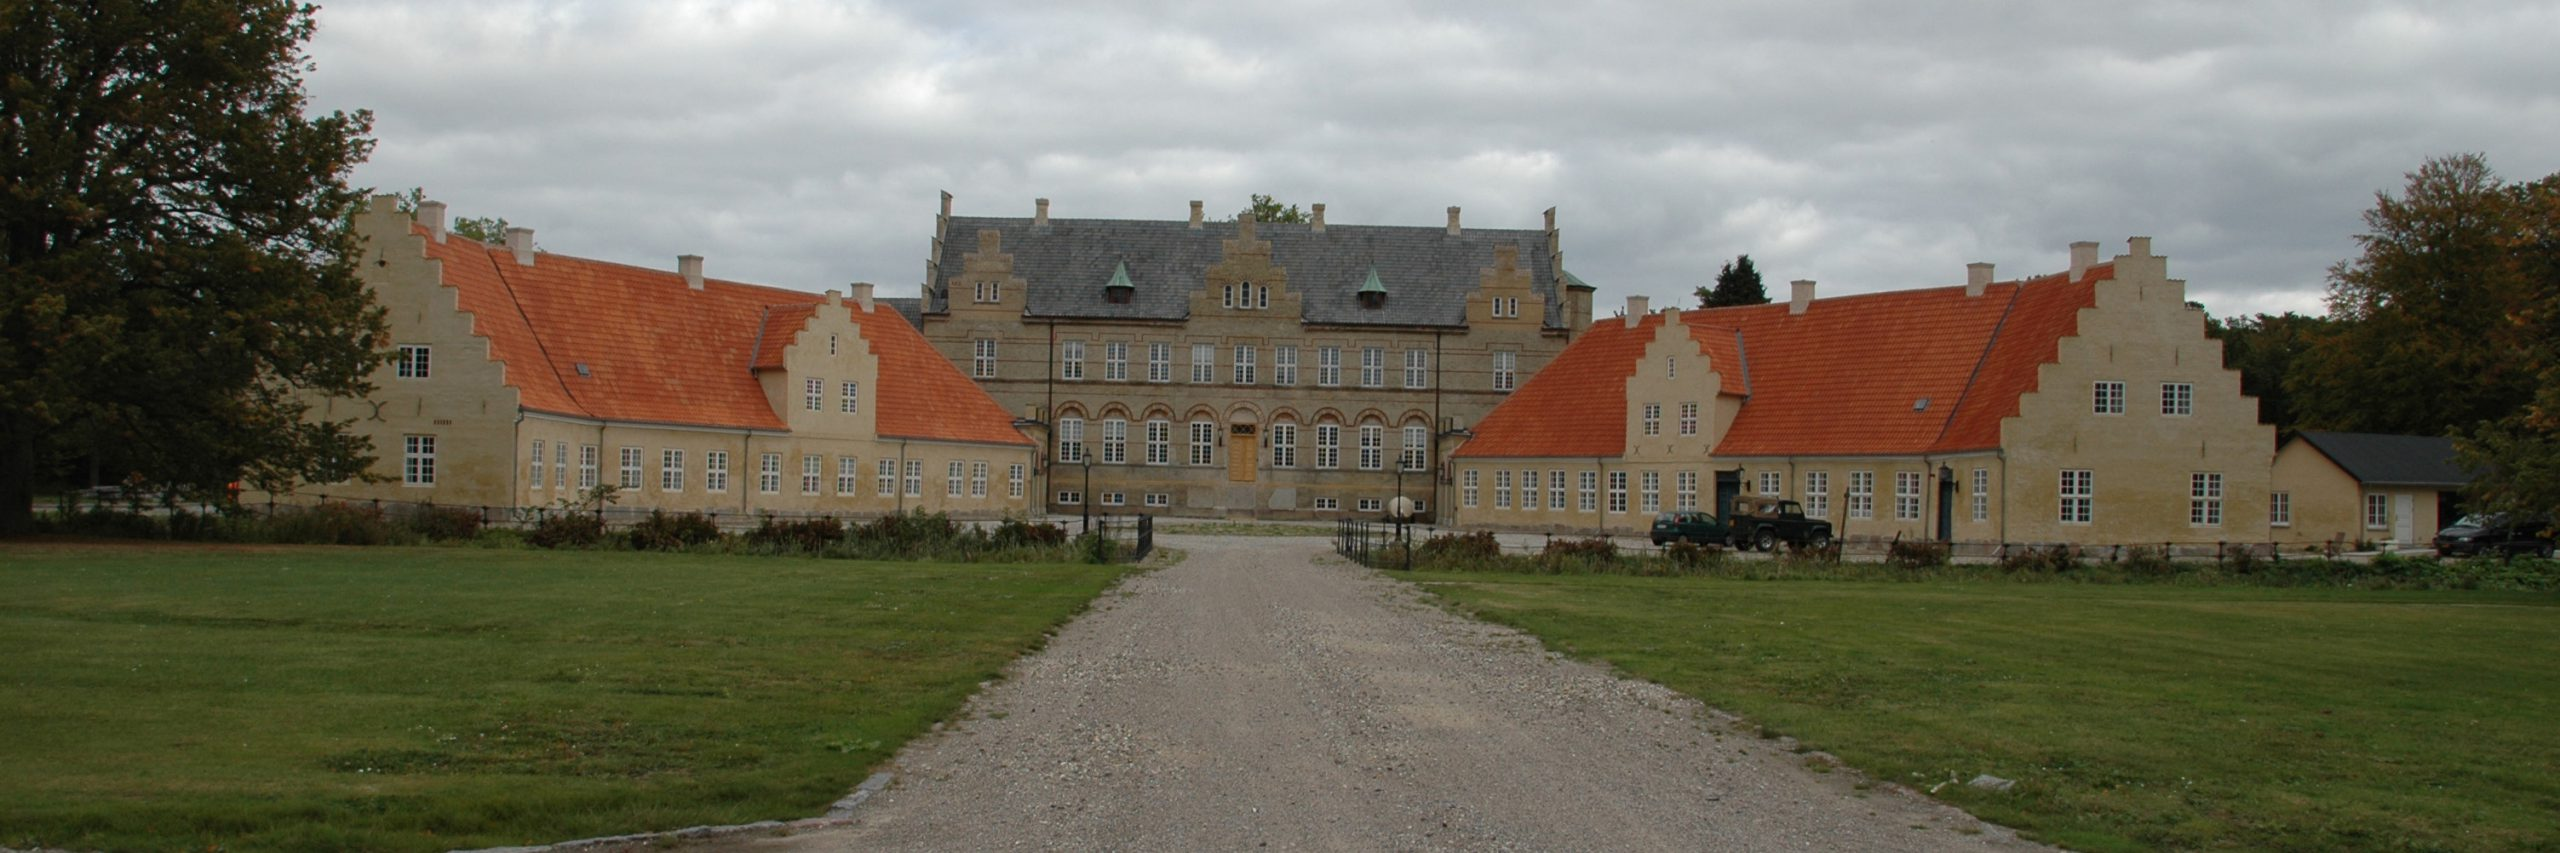 Lungholm, Lolland